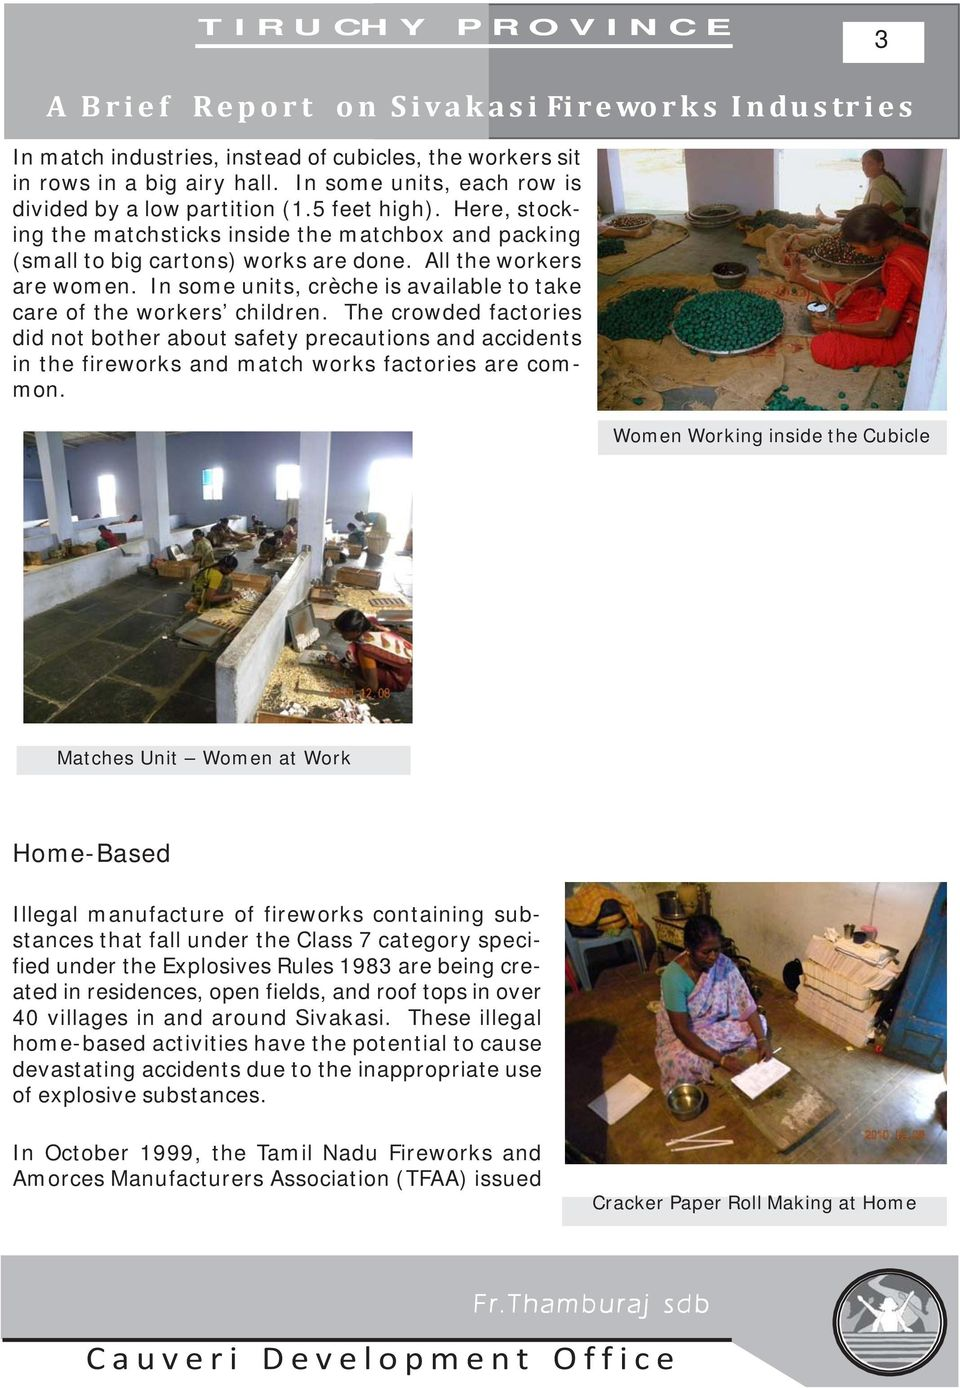 A BRIEF REPORT ON SIVAKASI FIREWORKS INDUSTRIES - PDF Free